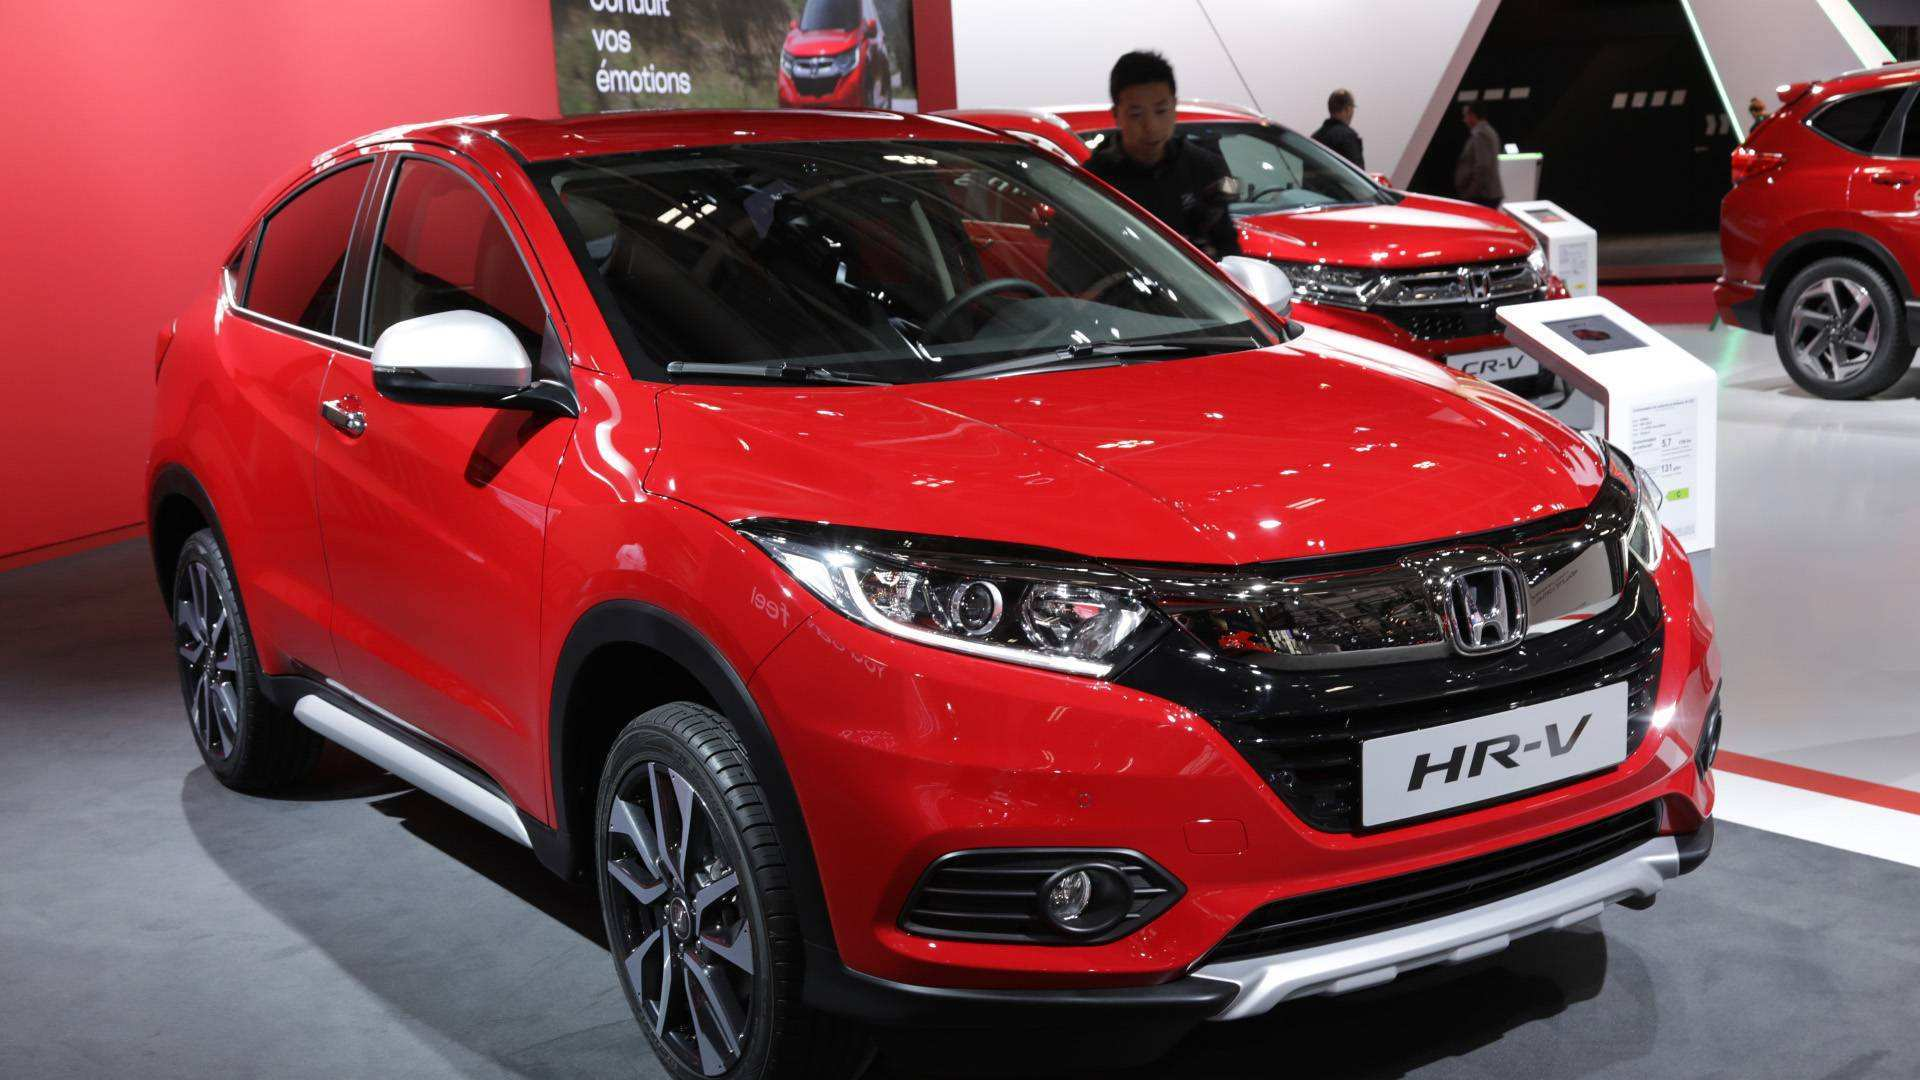 29 Concept of Honda Hrv 2019 Review by Honda Hrv 2019